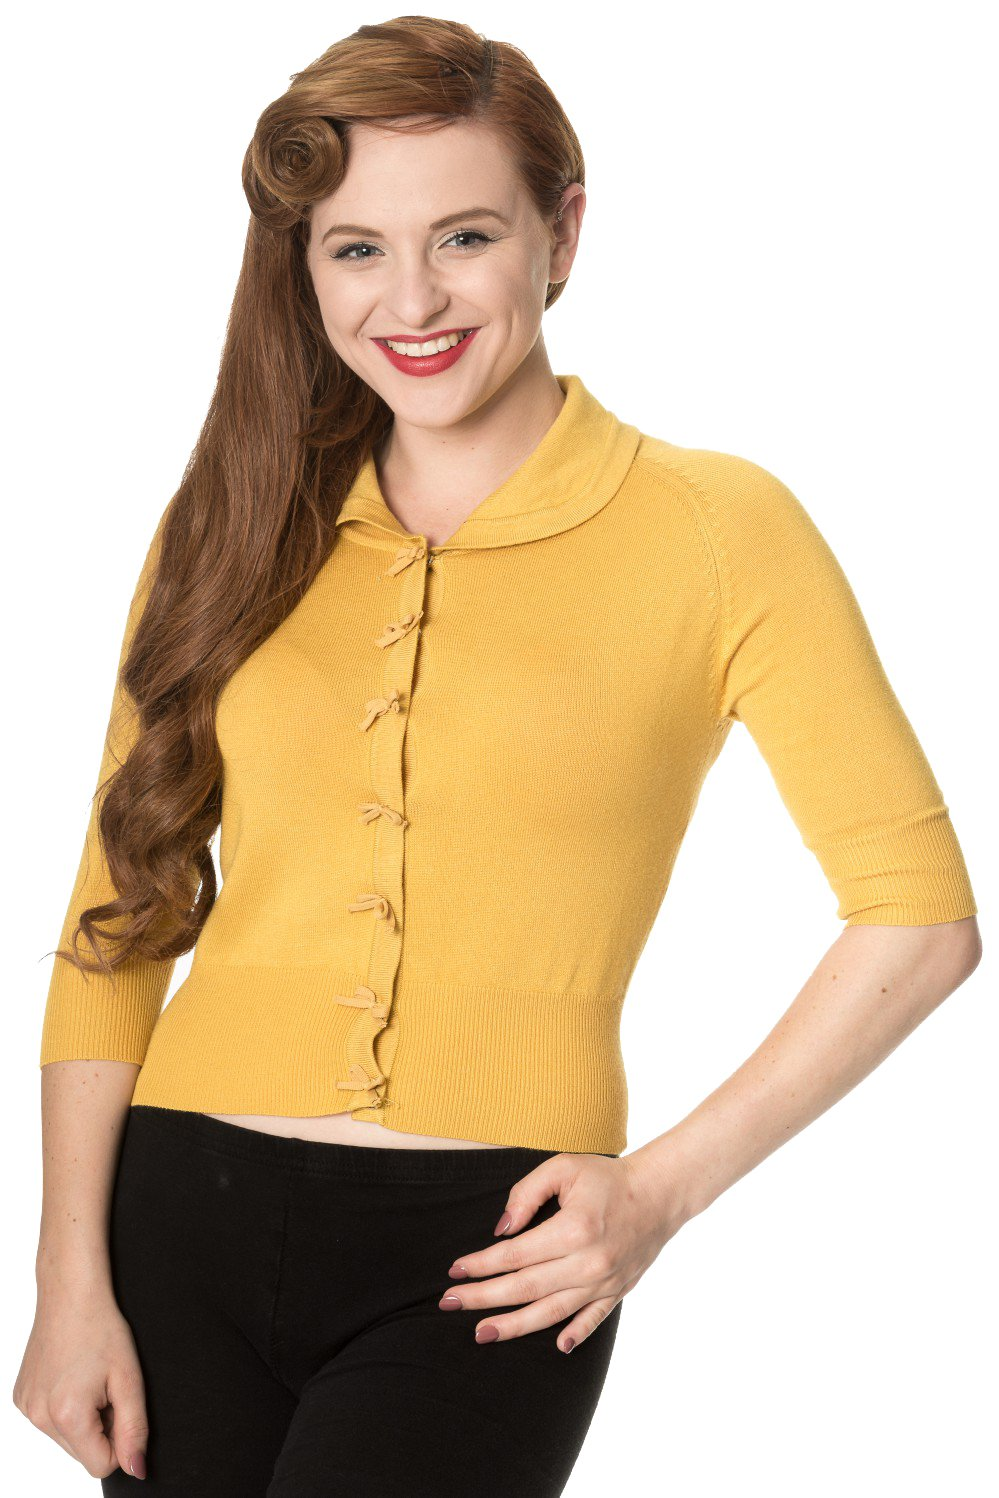 1940s Style Sweaters and Knit Tops Banned Womens April Short Sleeve Cardigan $38.99 AT vintagedancer.com